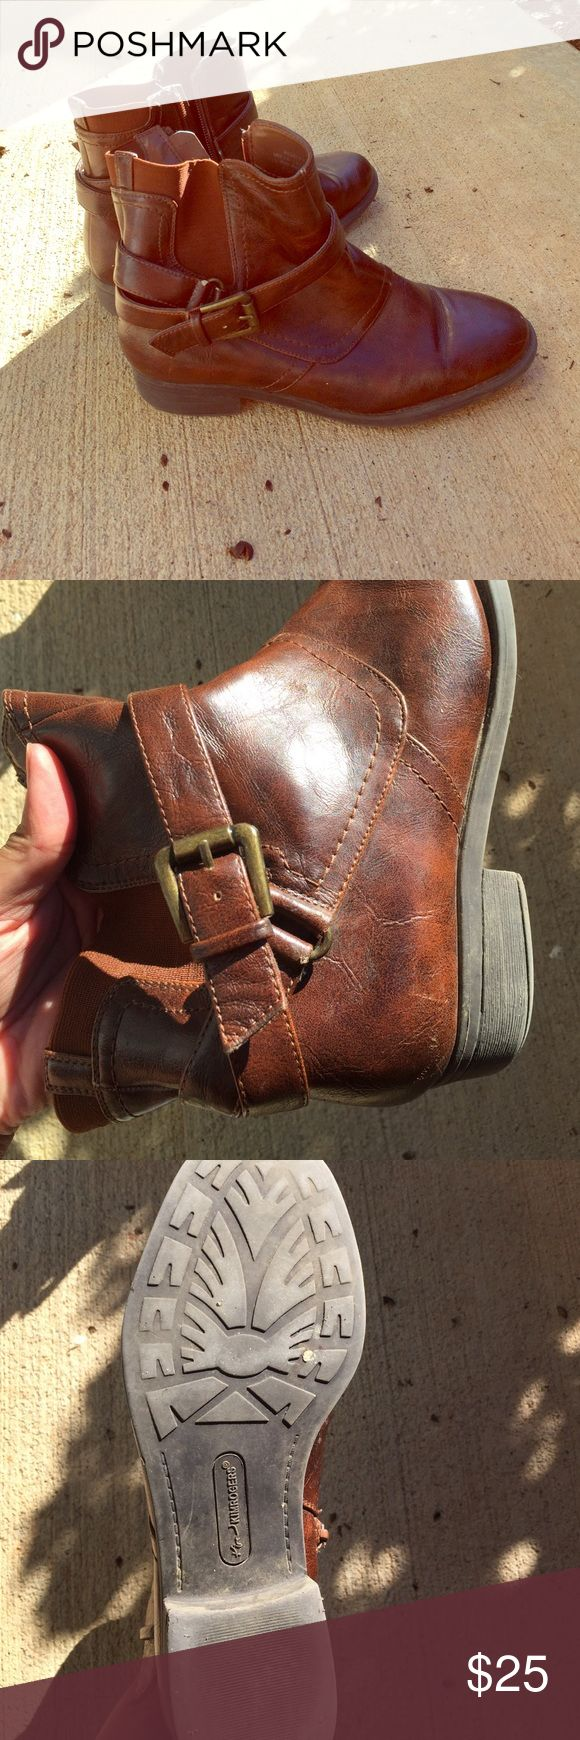 Size 6 Brown Boots Cute brown booties perfect with gold metal clasp. Size 6 Man made. Kim Rogers Shoes Ankle Boots & Booties